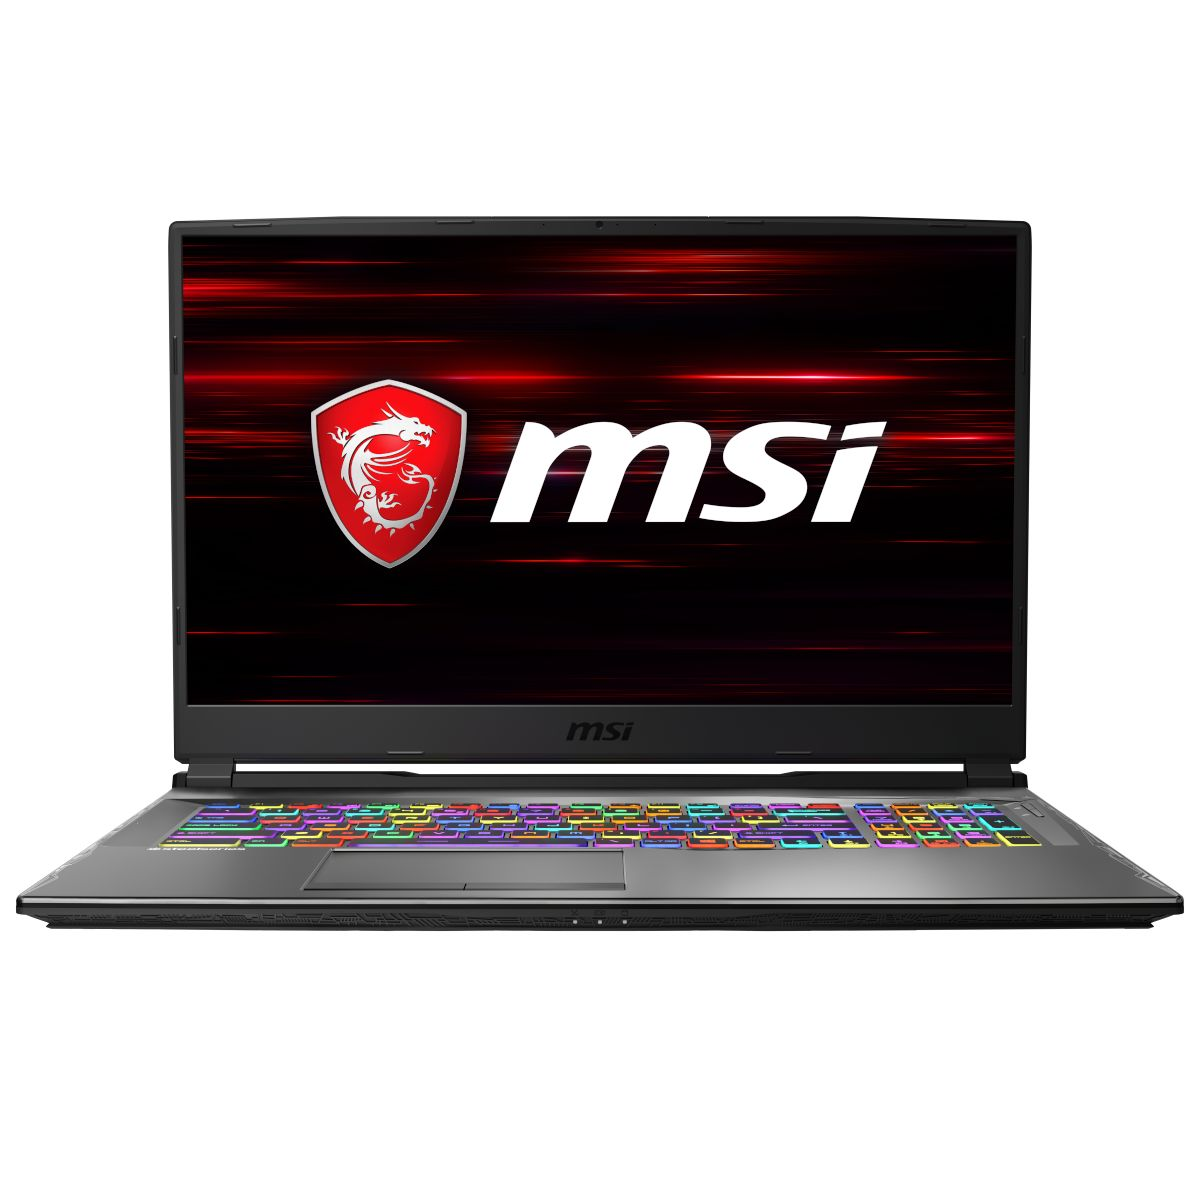 MSI GP75 Leopard 9SD i7-9750H/16GB/1TB HDD+256GB SSD/GeForce GTX 1660 Ti 6GB/17.3 Inch FHD/144Hz/Windows 10 Home Advanced